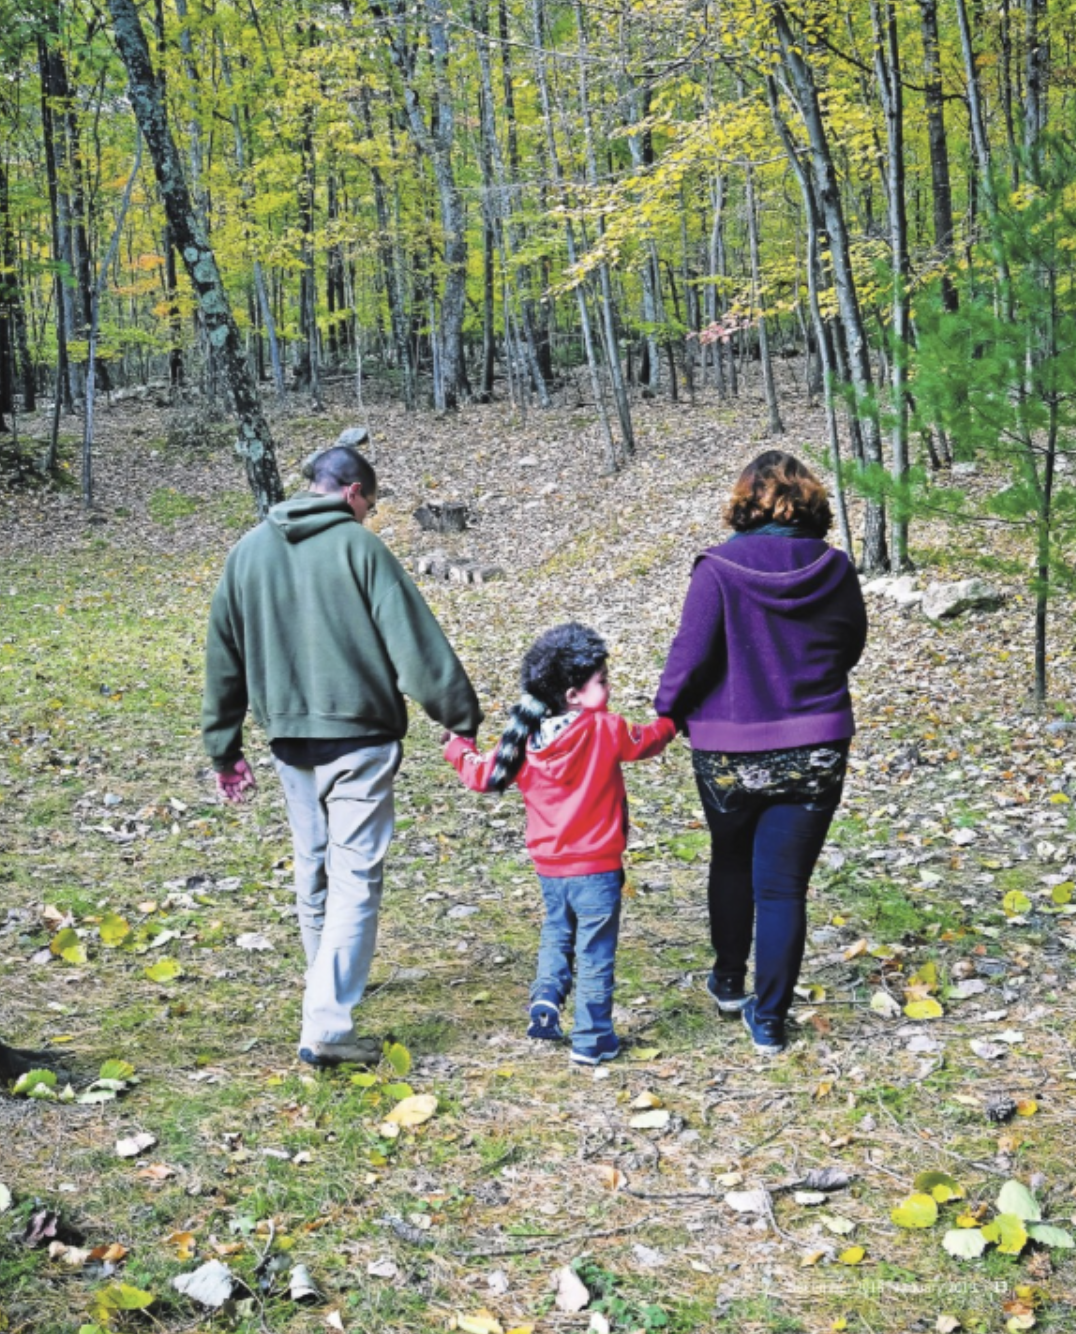 At right, Erica Tortorella, son RJ Sanders and husband Raymond Sanders walk in the backyard of their home in Pine Bush. [PHOTO BY JOHN DESANTO]